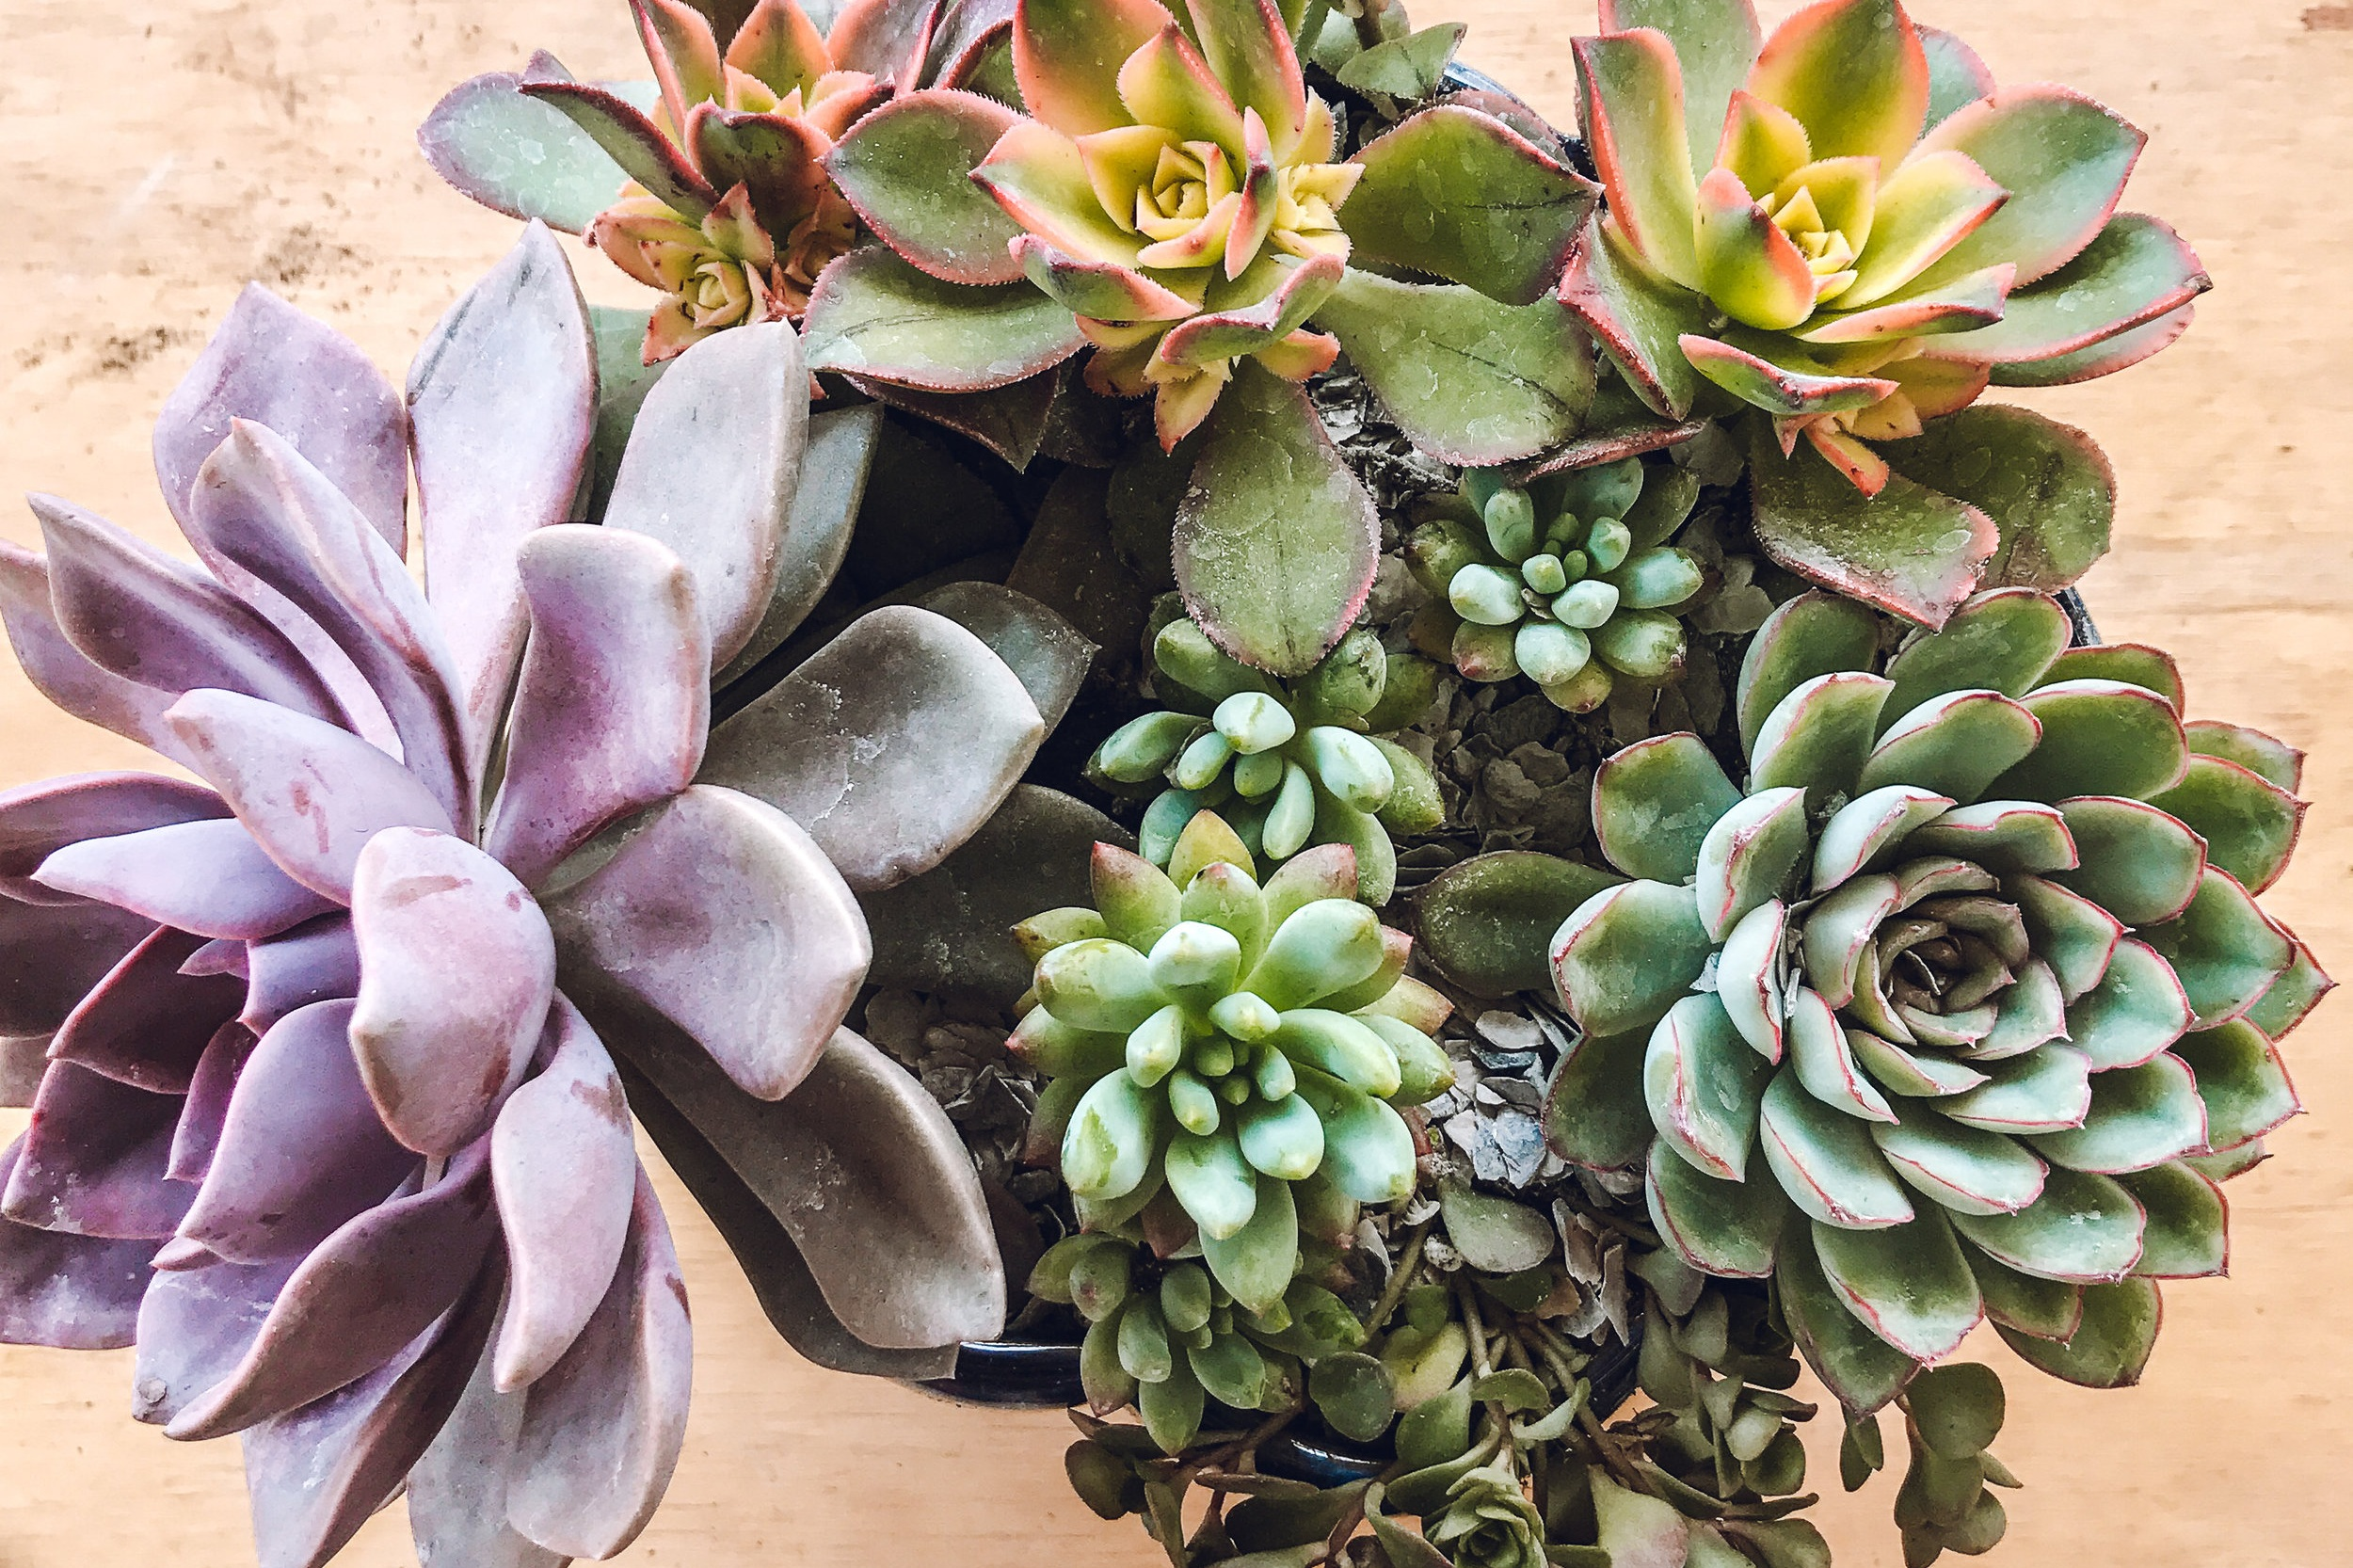 container design - We have pre-planted containers available for sale at the nursery, or we can work with you to build a custom creation based on your favorite colors, growing conditions, and preferences.